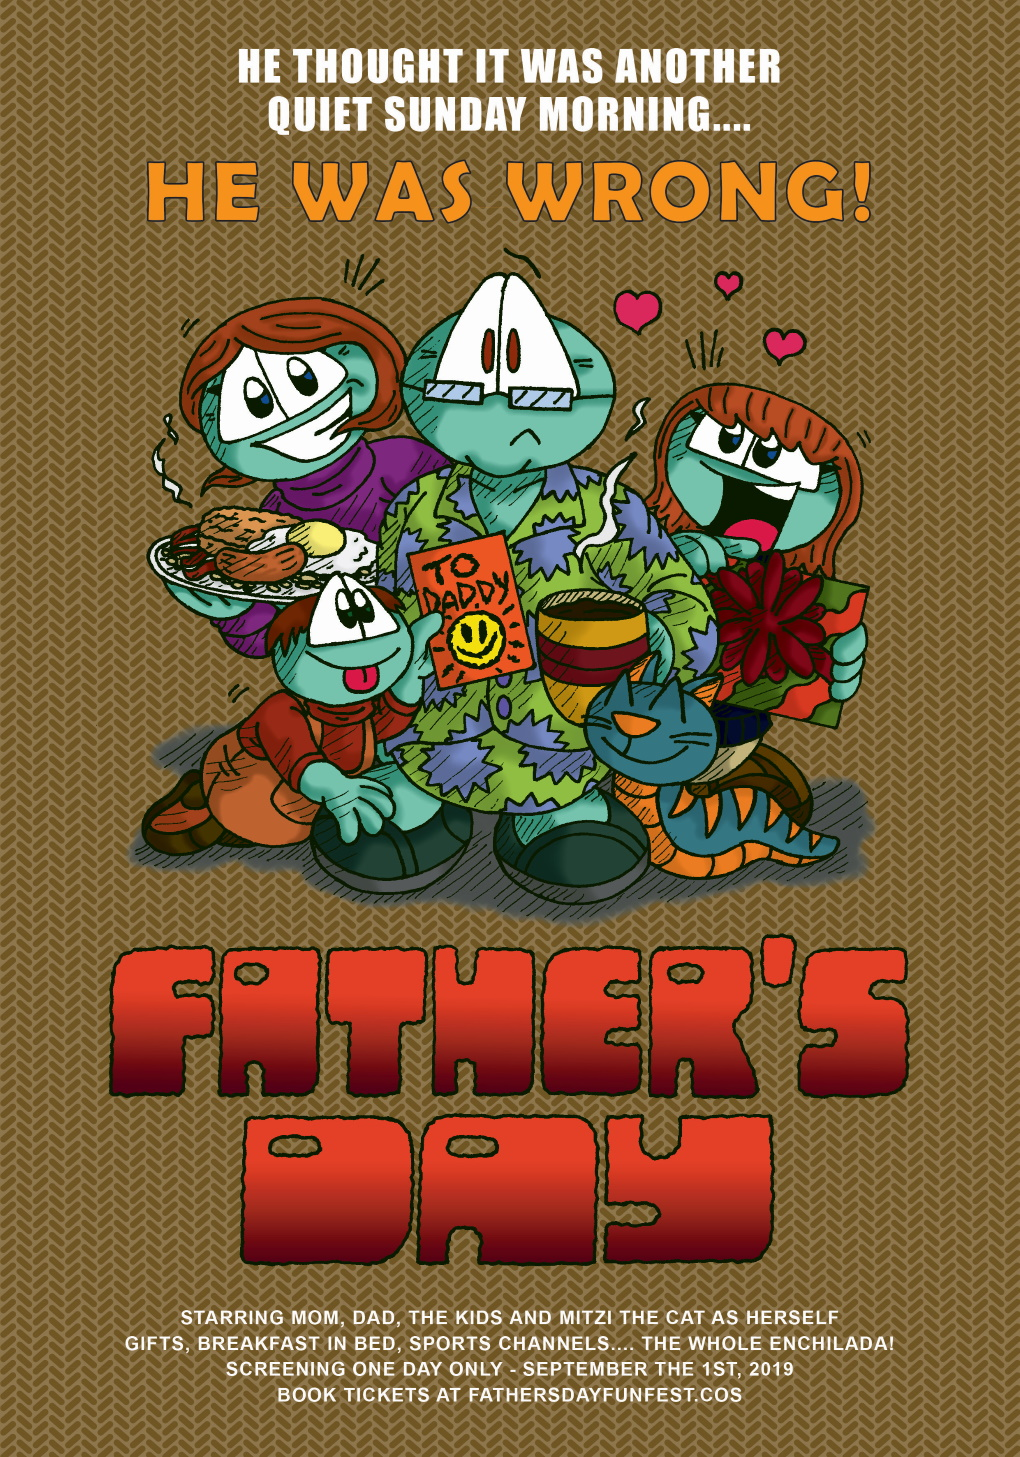 Father's Day filmstraviganza!